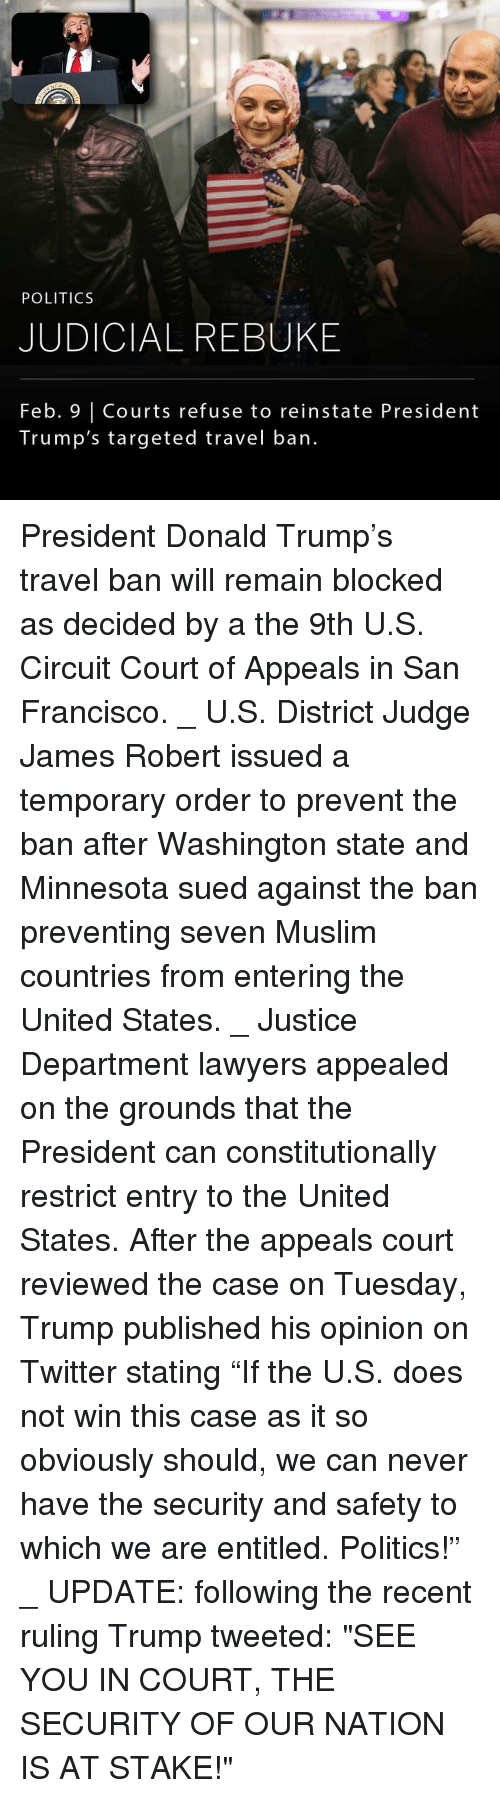 """reinstation: POLITICS  JUDICIAL REBUKE  Feb. Courts refuse to reinstate President  Trump's targeted travel ban. President Donald Trump's travel ban will remain blocked as decided by a the 9th U.S. Circuit Court of Appeals in San Francisco. _ U.S. District Judge James Robert issued a temporary order to prevent the ban after Washington state and Minnesota sued against the ban preventing seven Muslim countries from entering the United States. _ Justice Department lawyers appealed on the grounds that the President can constitutionally restrict entry to the United States. After the appeals court reviewed the case on Tuesday, Trump published his opinion on Twitter stating """"If the U.S. does not win this case as it so obviously should, we can never have the security and safety to which we are entitled. Politics!"""" _ UPDATE: following the recent ruling Trump tweeted: """"SEE YOU IN COURT, THE SECURITY OF OUR NATION IS AT STAKE!"""""""